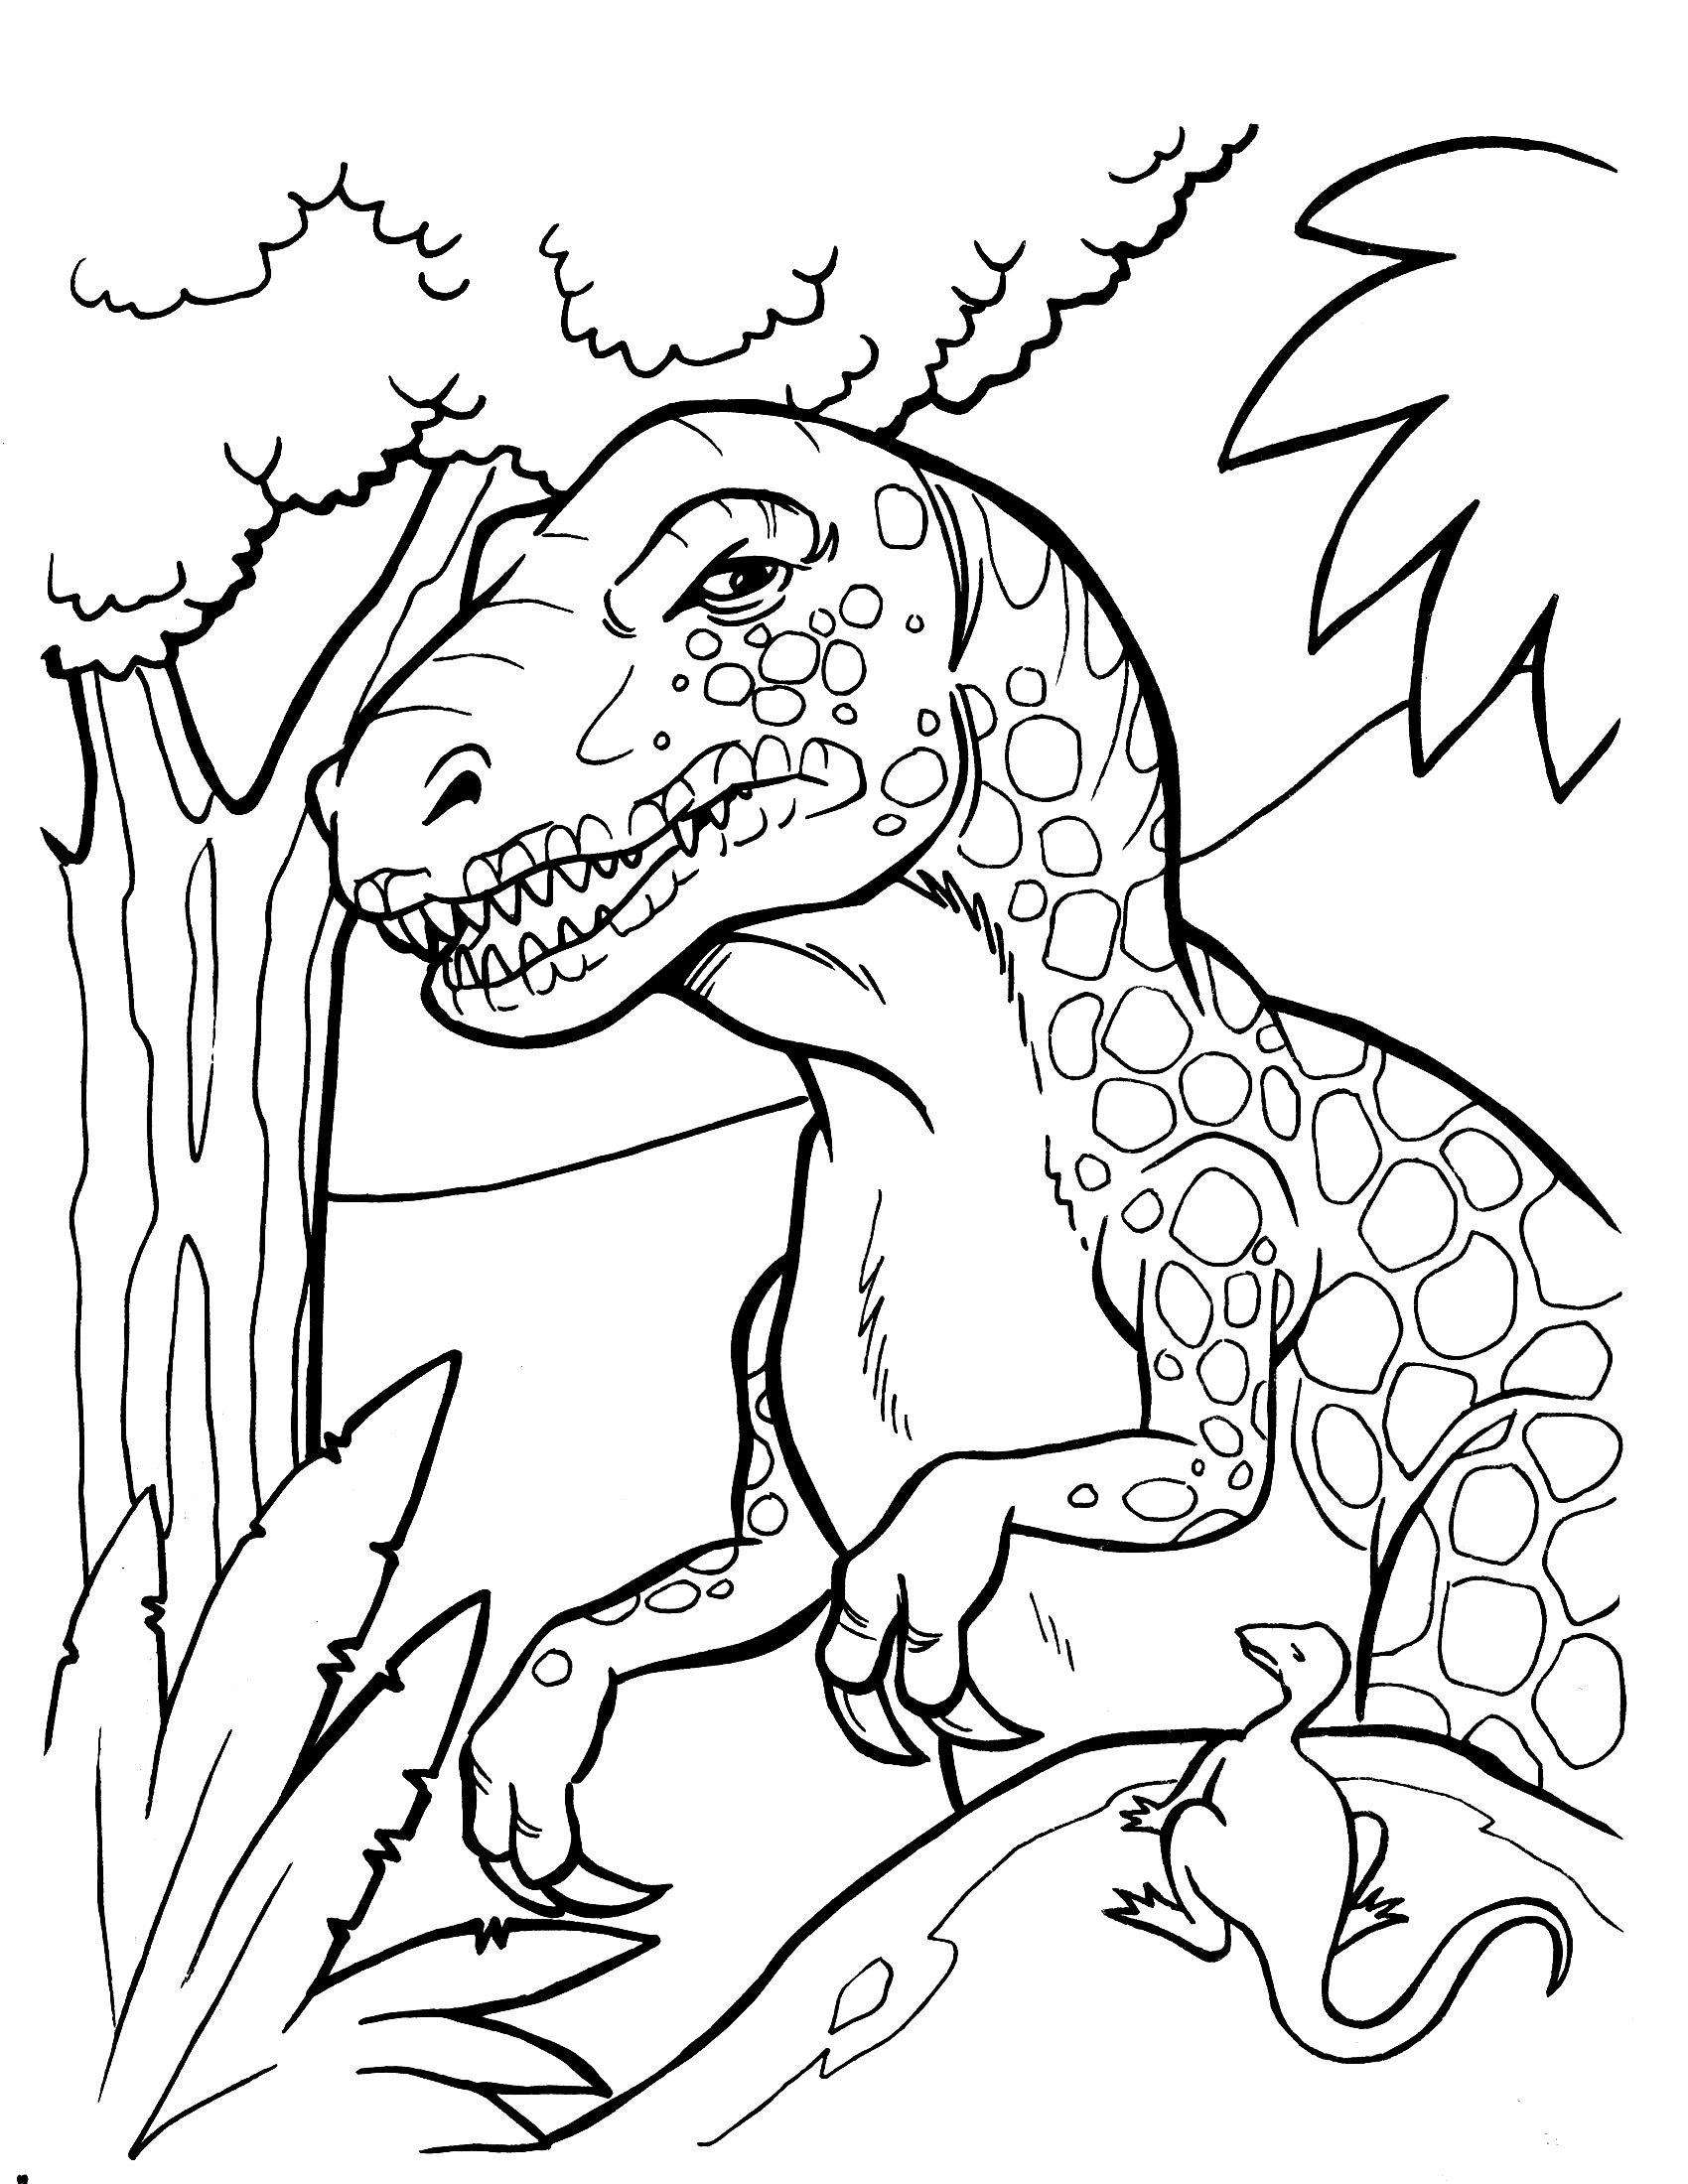 Free Printable Dinosaur Coloring Pages | Clip And Color Part Two - Free Printable Dinosaur Coloring Pages